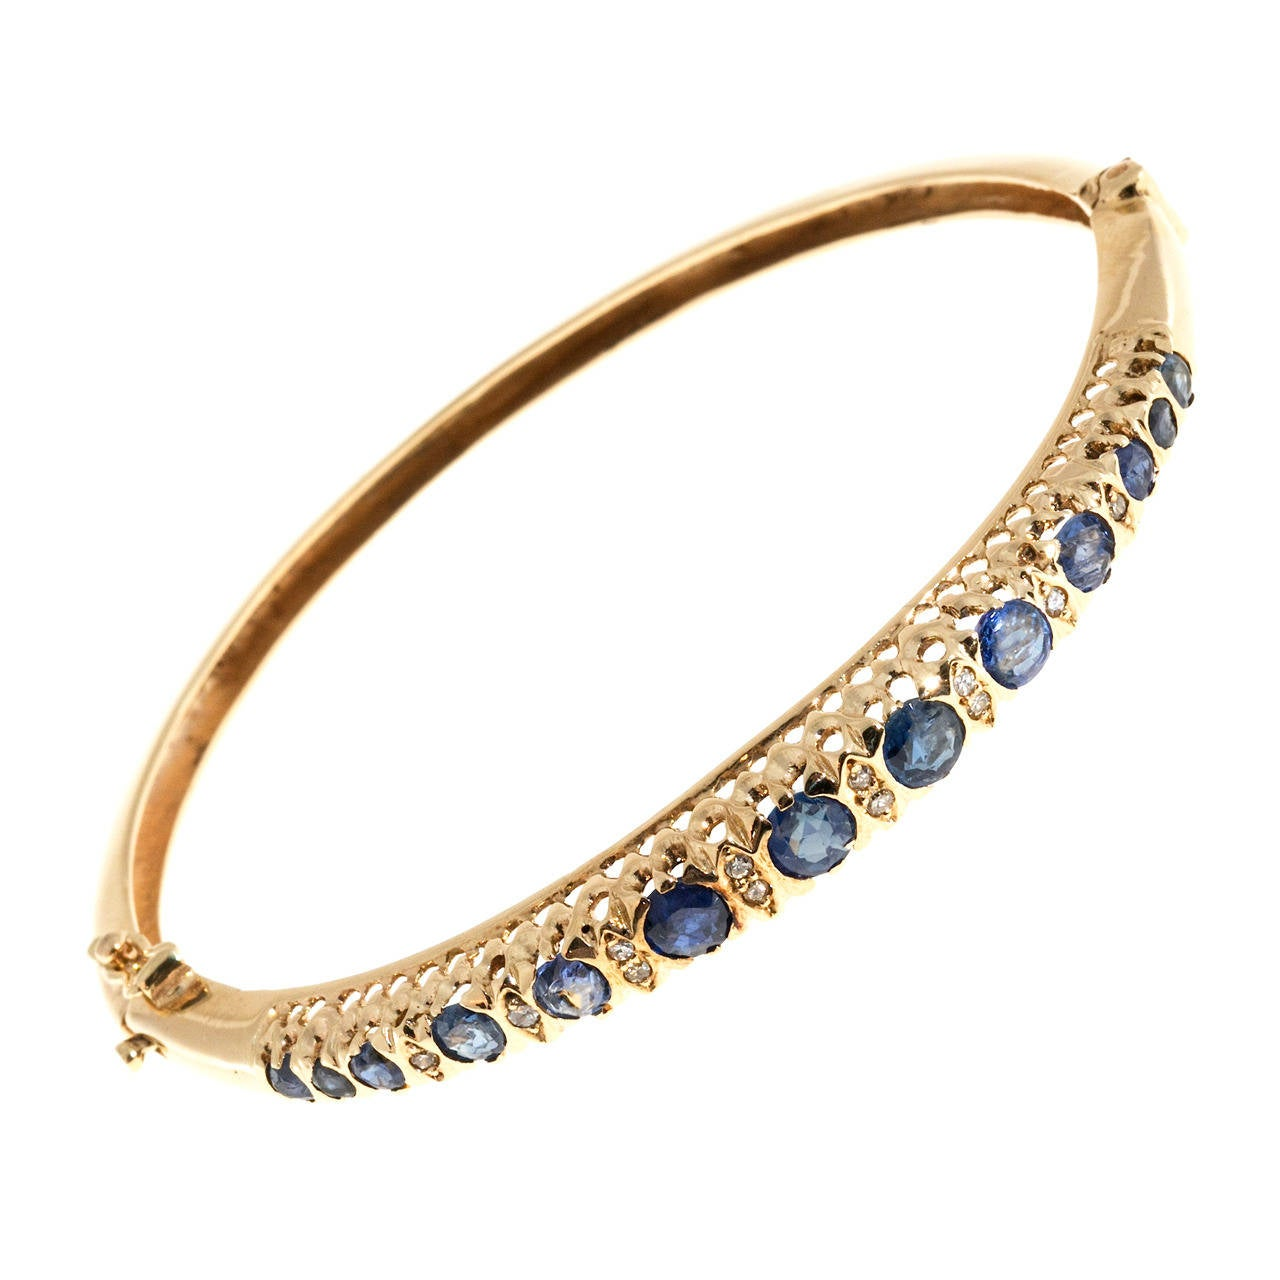 Oval Sapphire Diamond Gold Bangle Bracelet